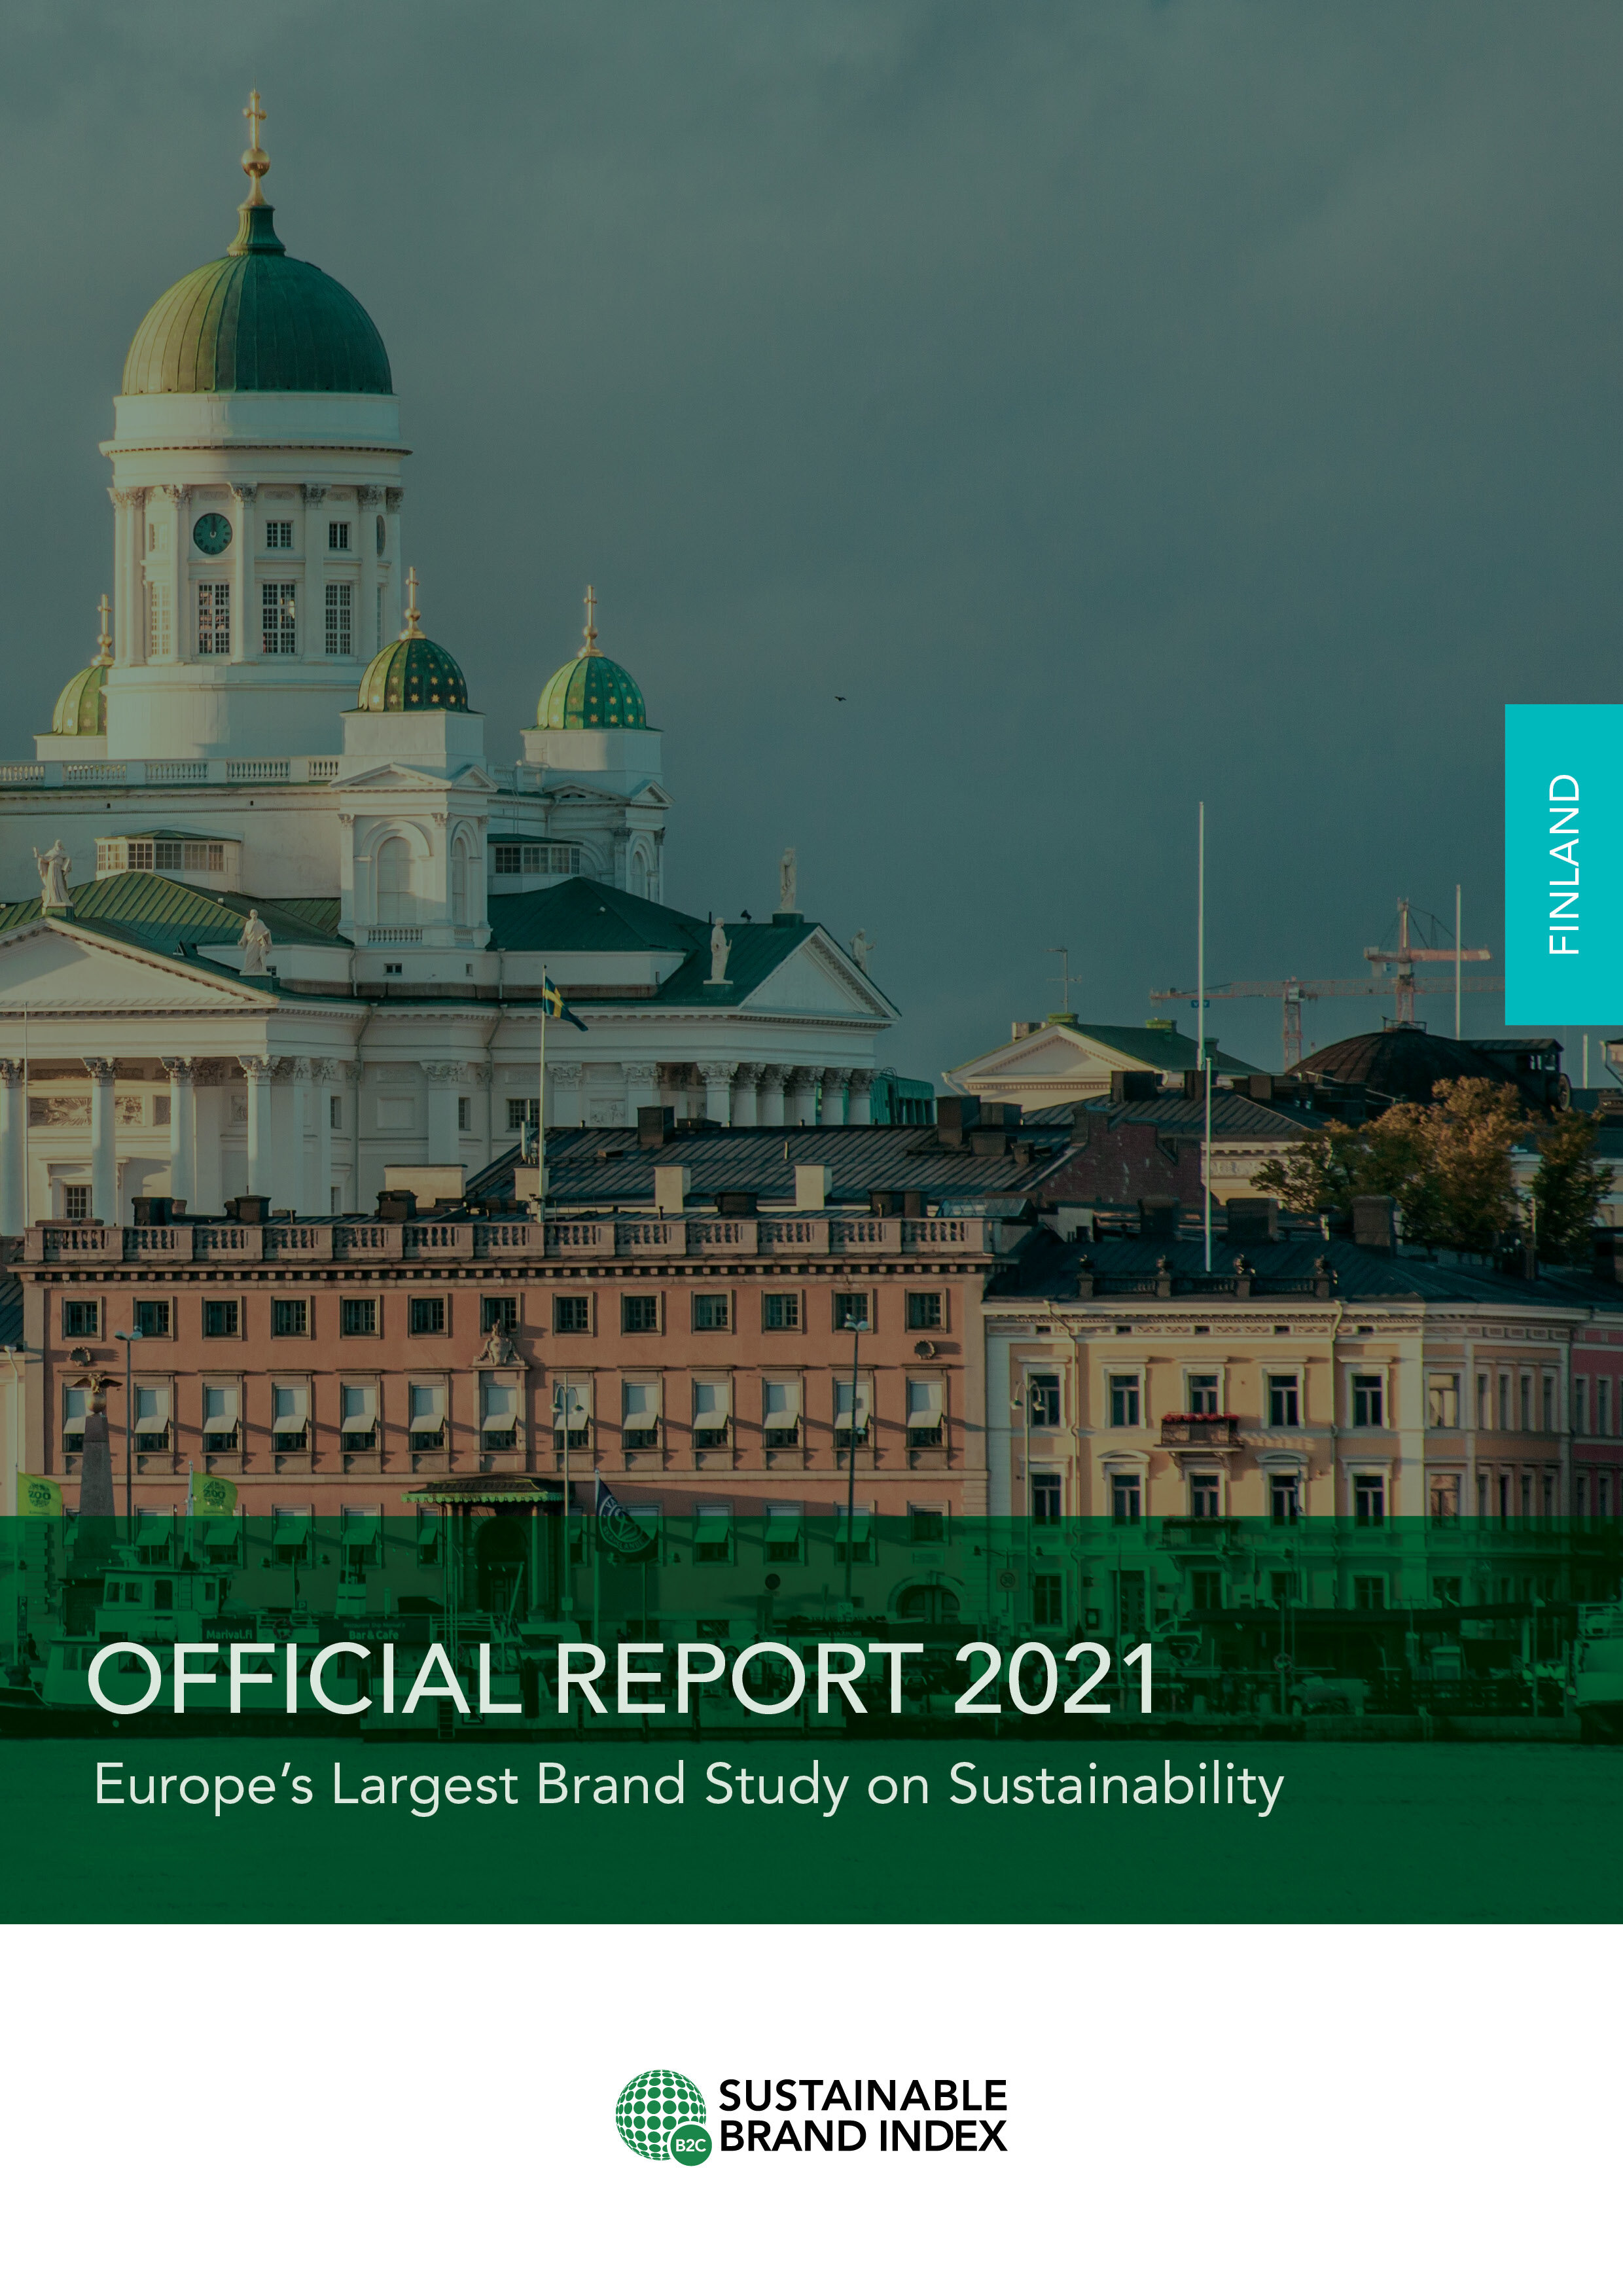 FI_Official Report_2021_Sustainable Brand Index.jpg